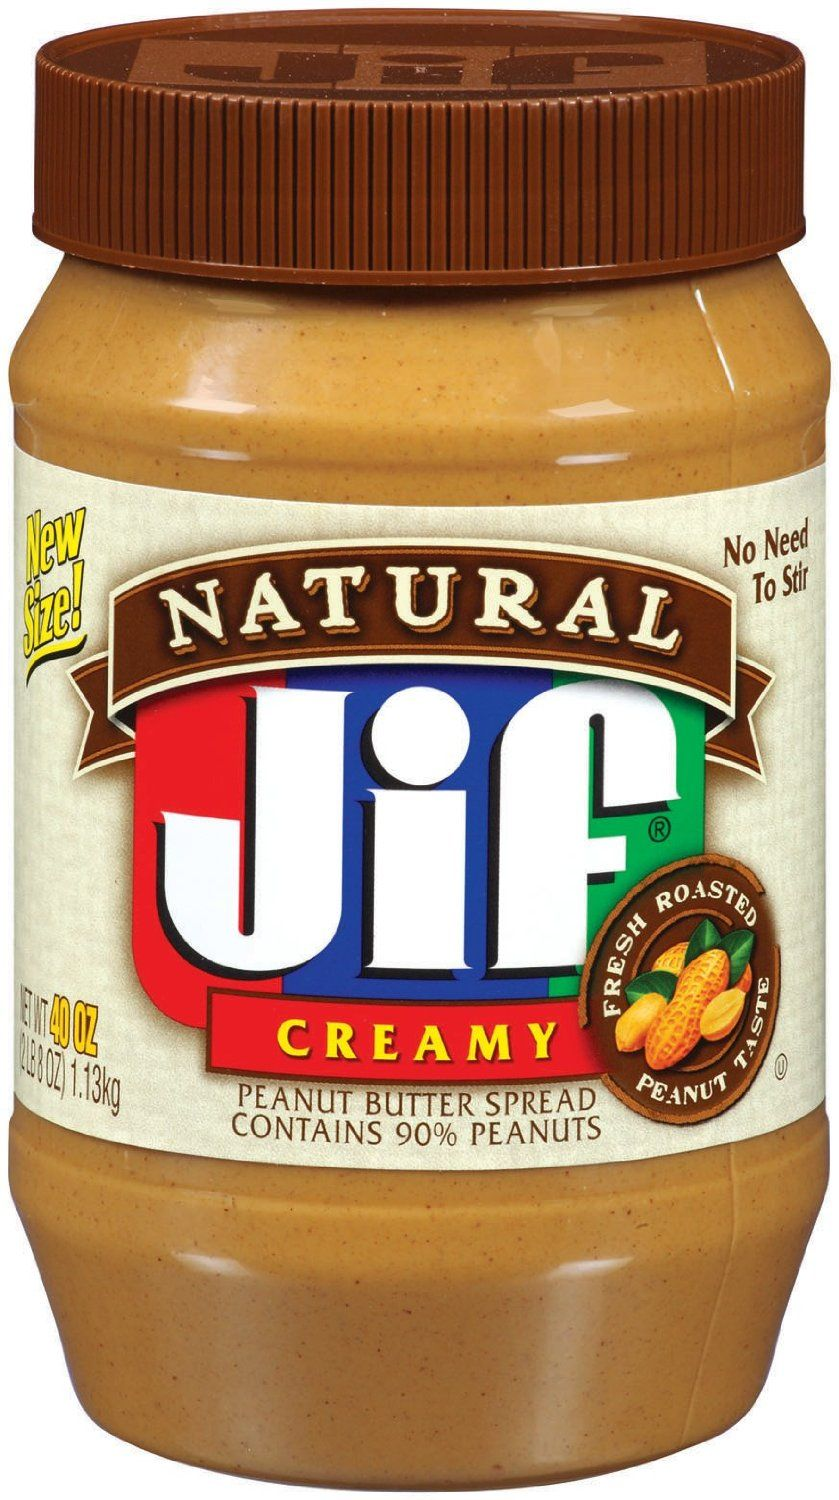 http://worldgrocerystoreandmore.ecrater.com/p/19739801/ Jif Natural Creamy Peanut Butter 40 oz (2 lbs. 8 oz.).  Contains no preservatives.  No refrigeration required, No need to stir.  Fresh roasted peanut taste.  Contains 90% peanuts.